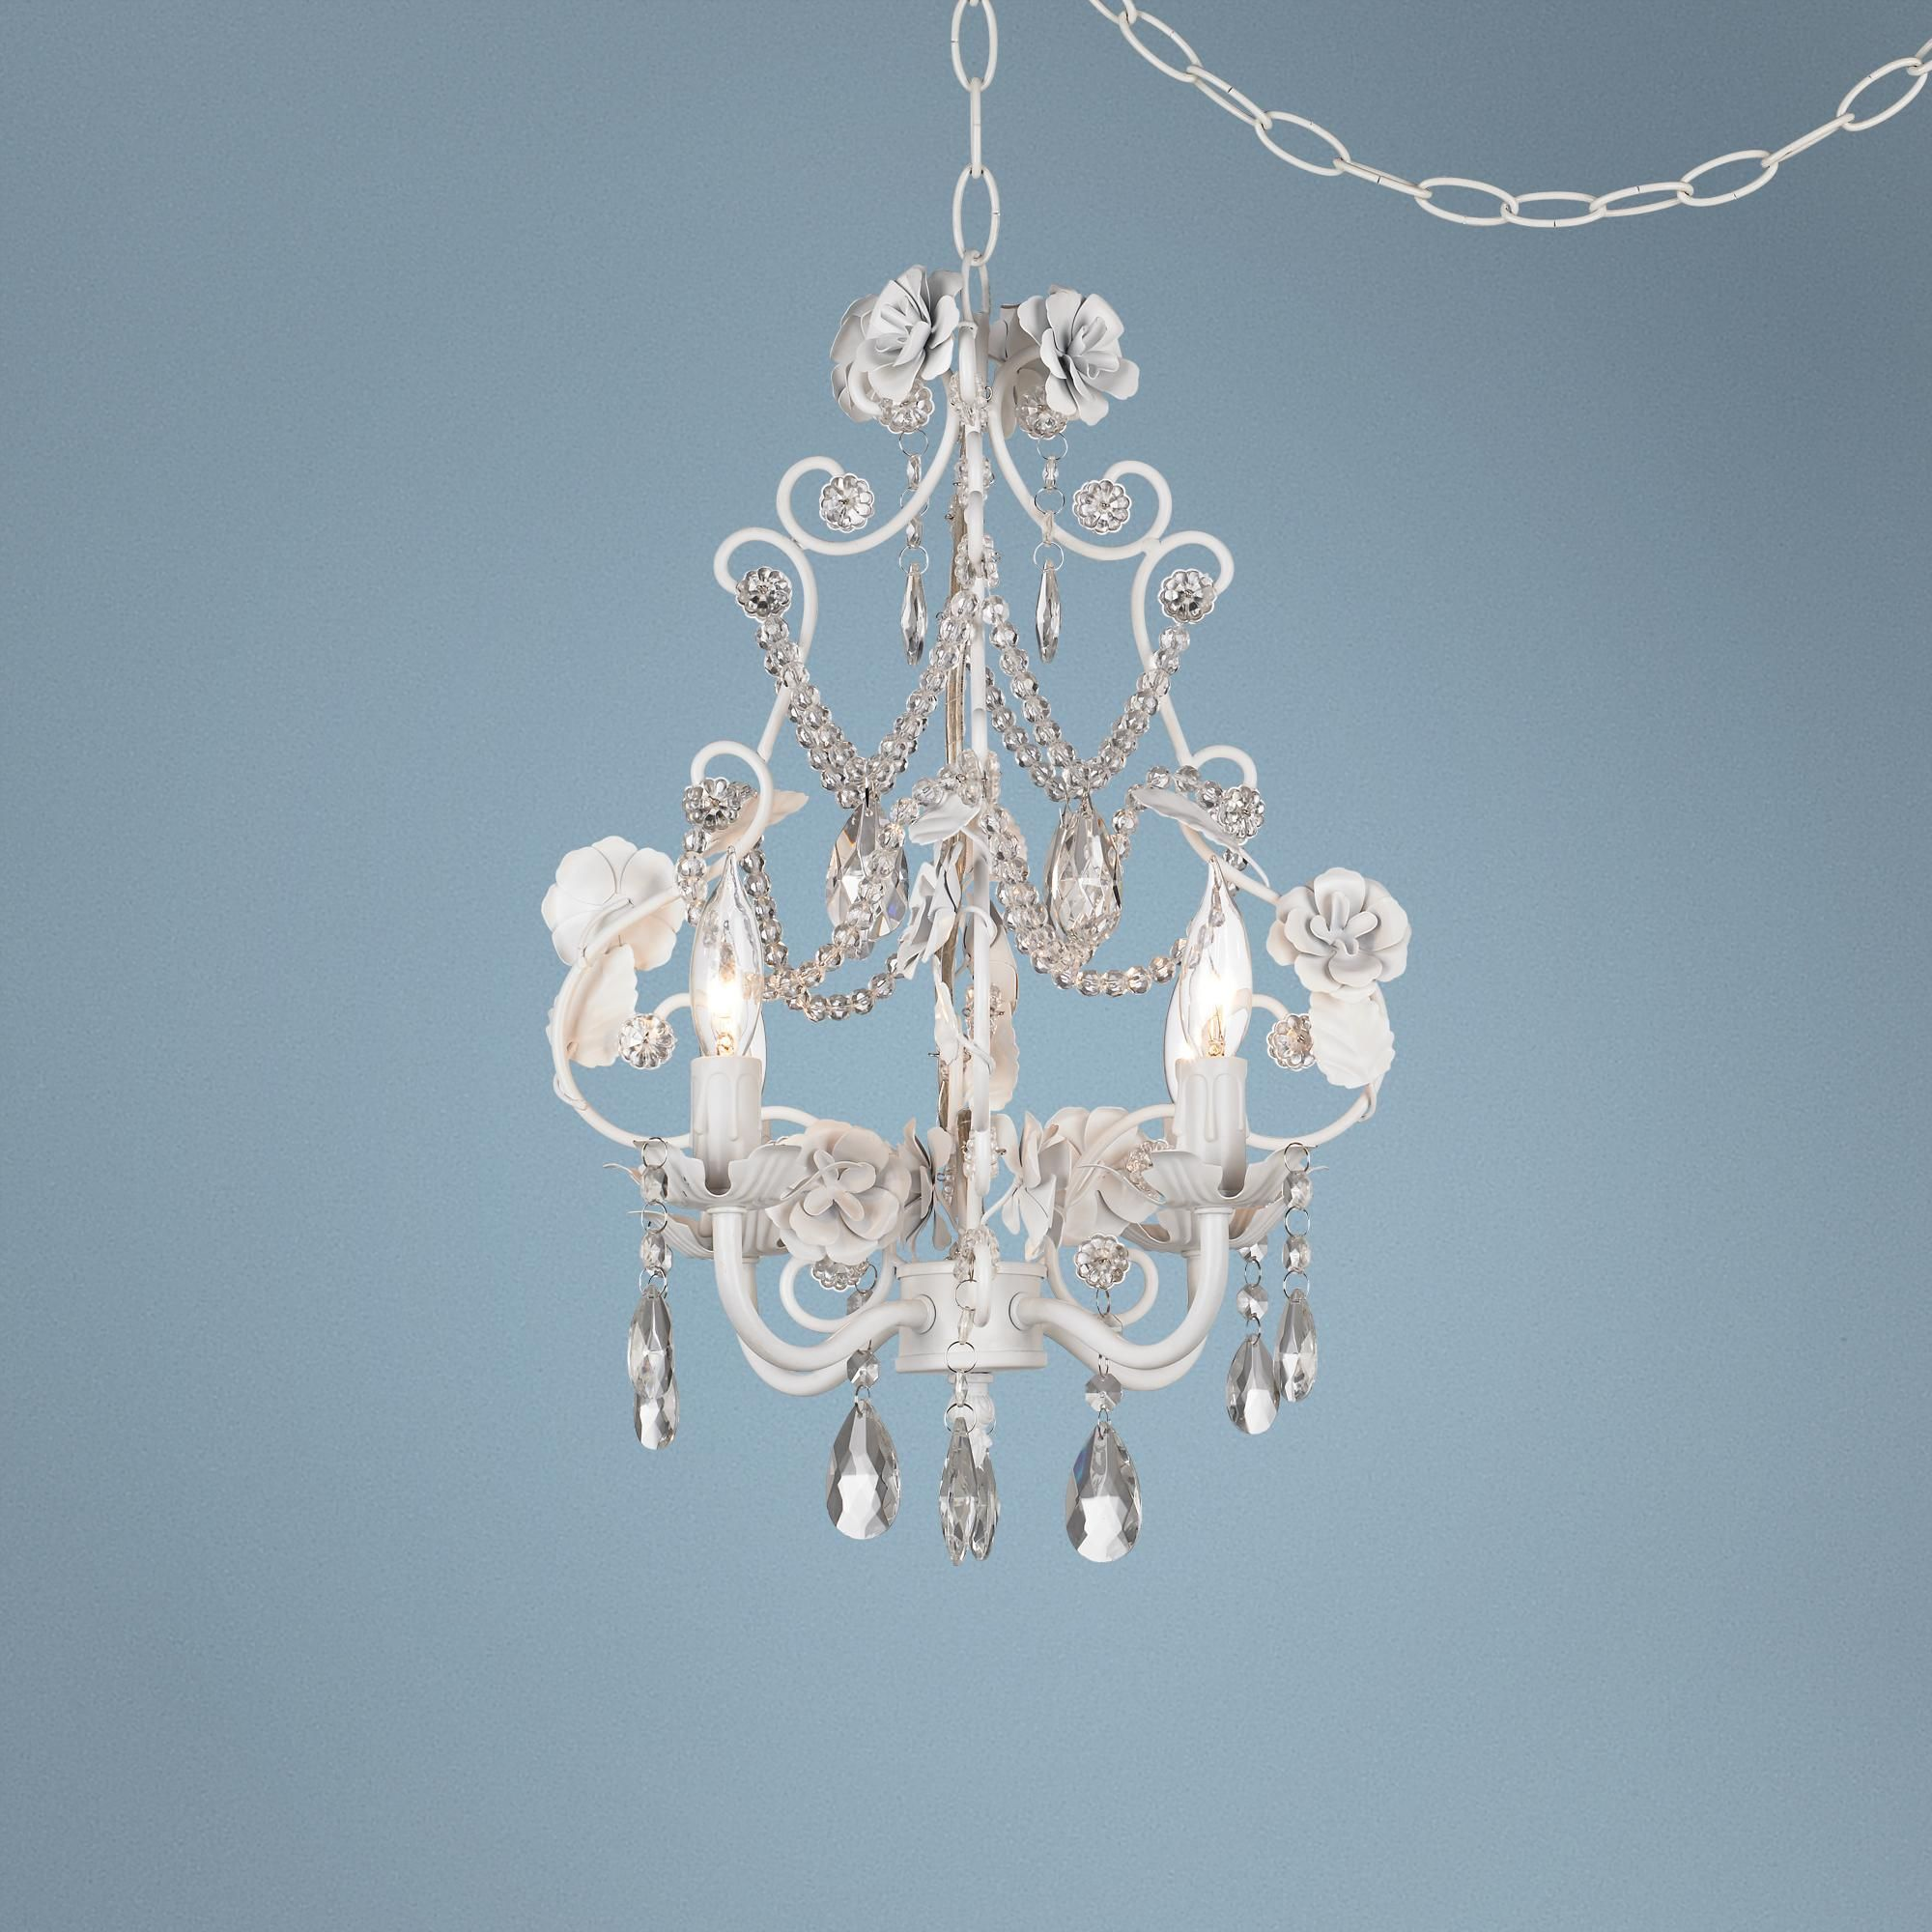 White Floral With Crystal Accents Plug In Swag Chandelier Style